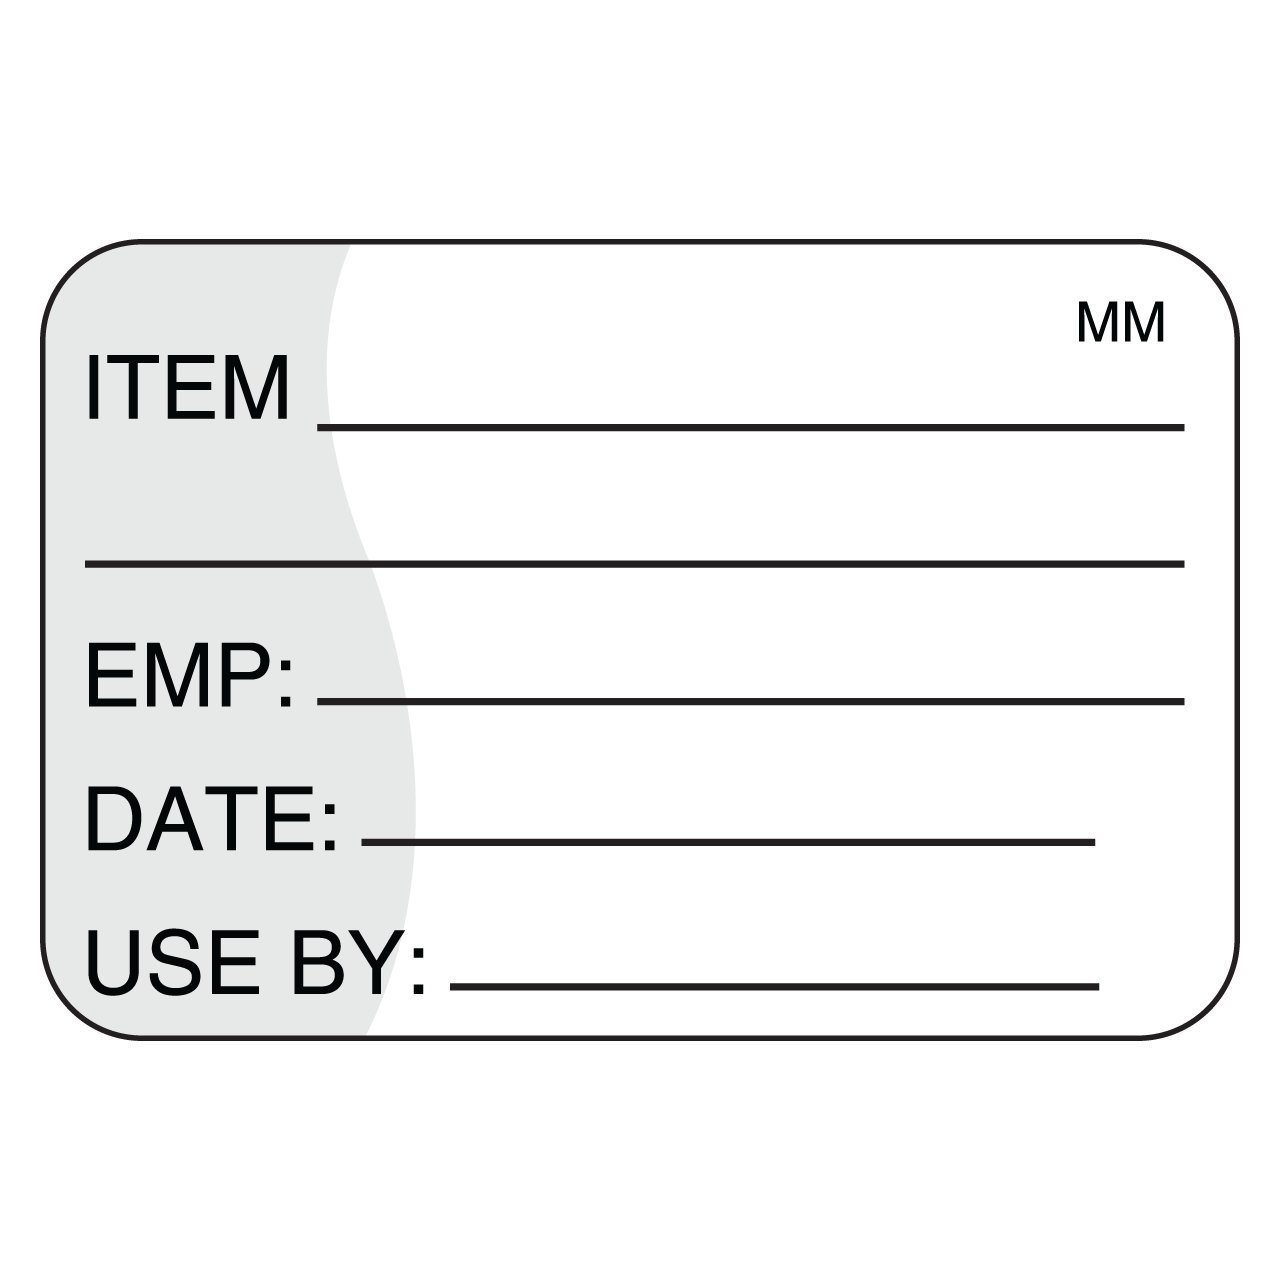 DayMark Removable Item/Date/Use-by Shelf-Life Label, 1'' x 1.5'' (Roll of 1000) by DayMark Safety Systems